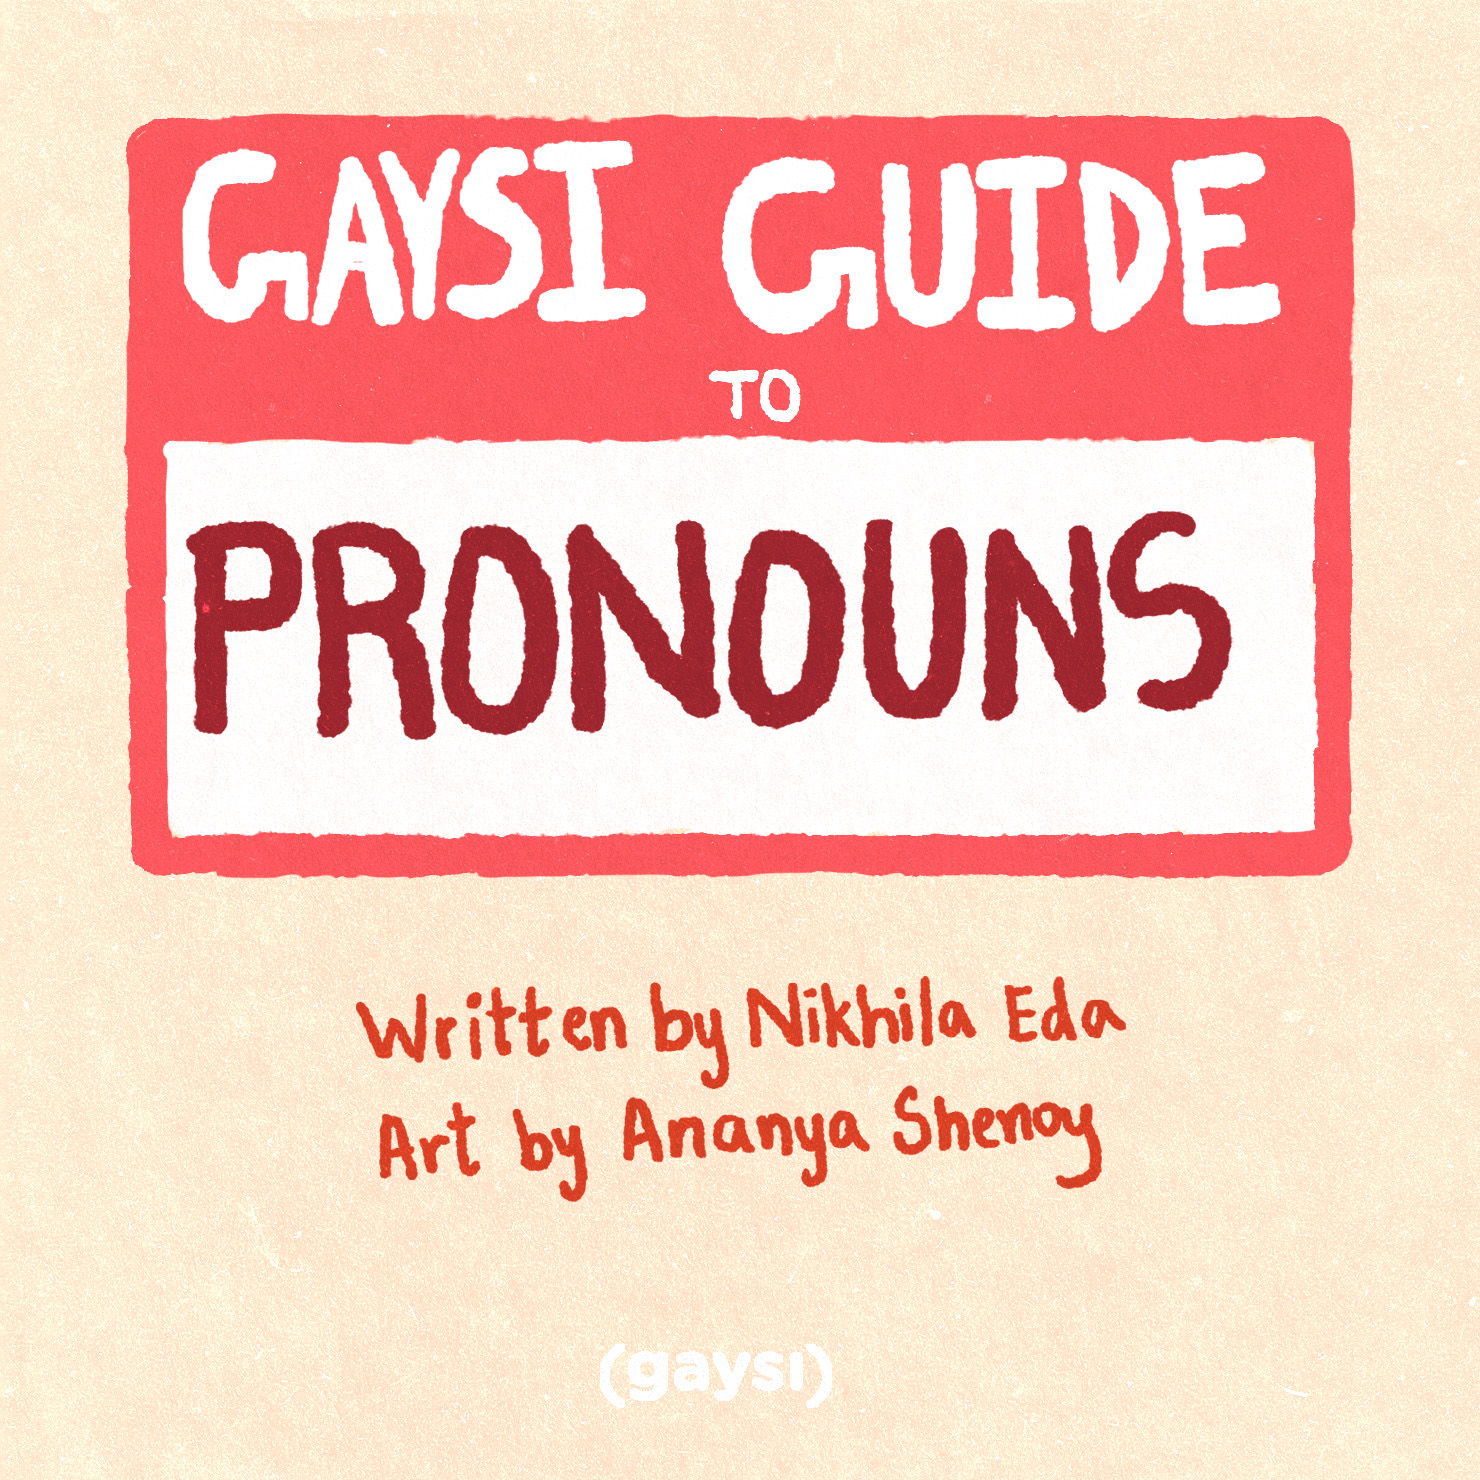 The Gaysi Guide To Pronouns